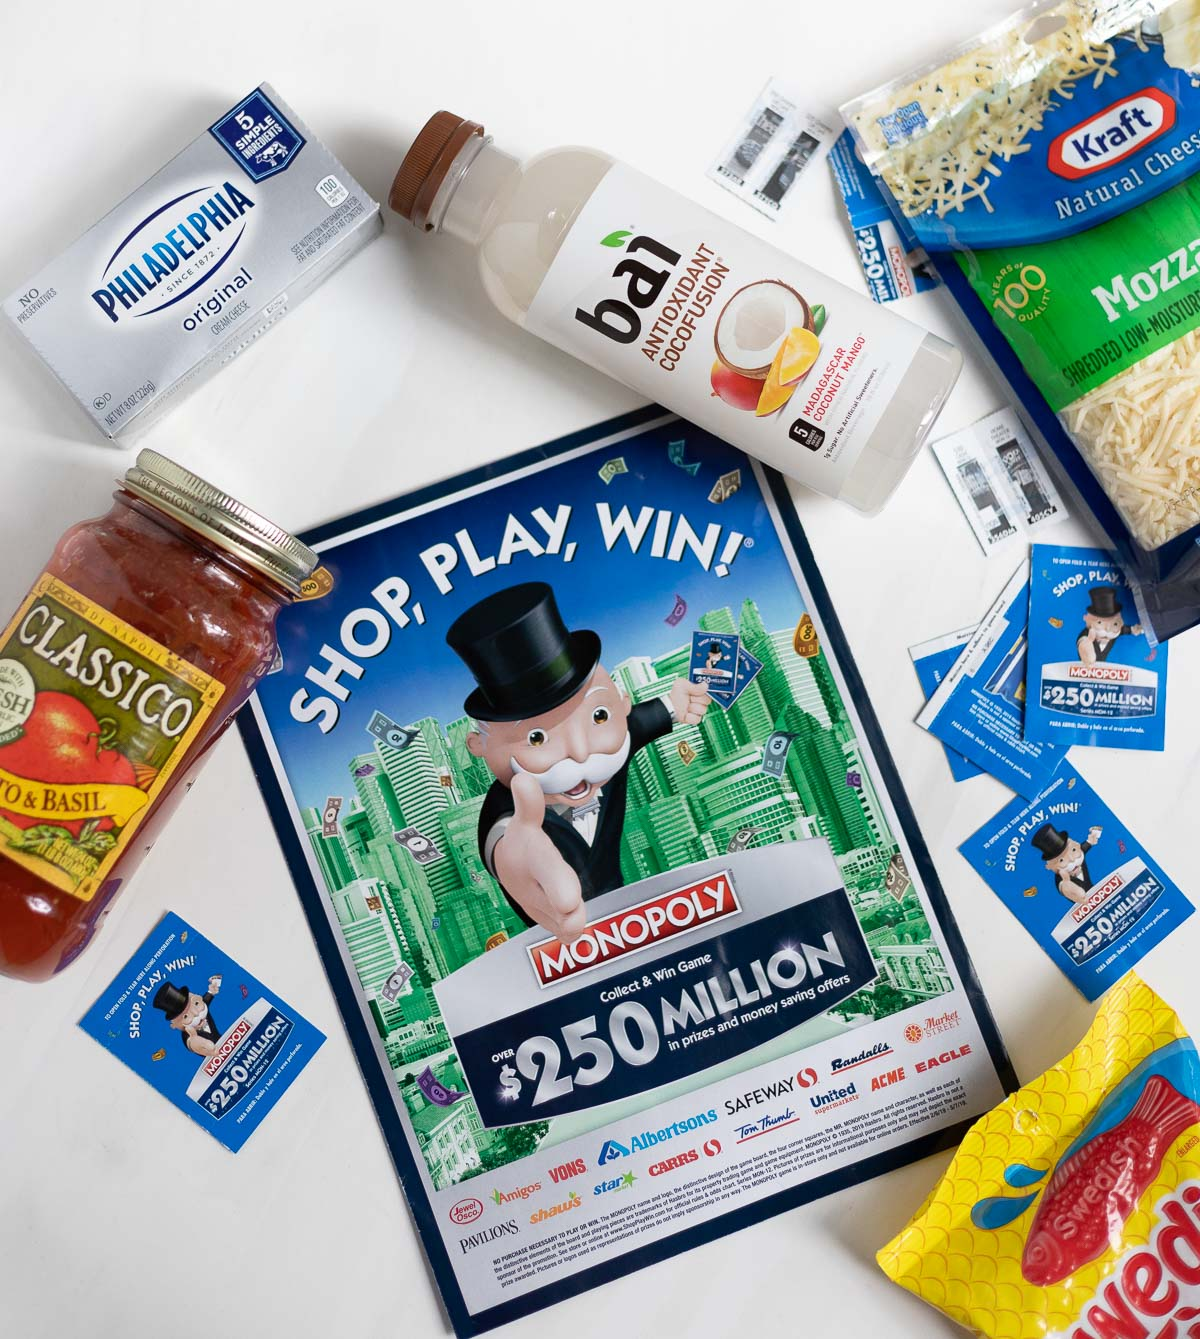 Monopoly Shop, Play, Win game and participating products